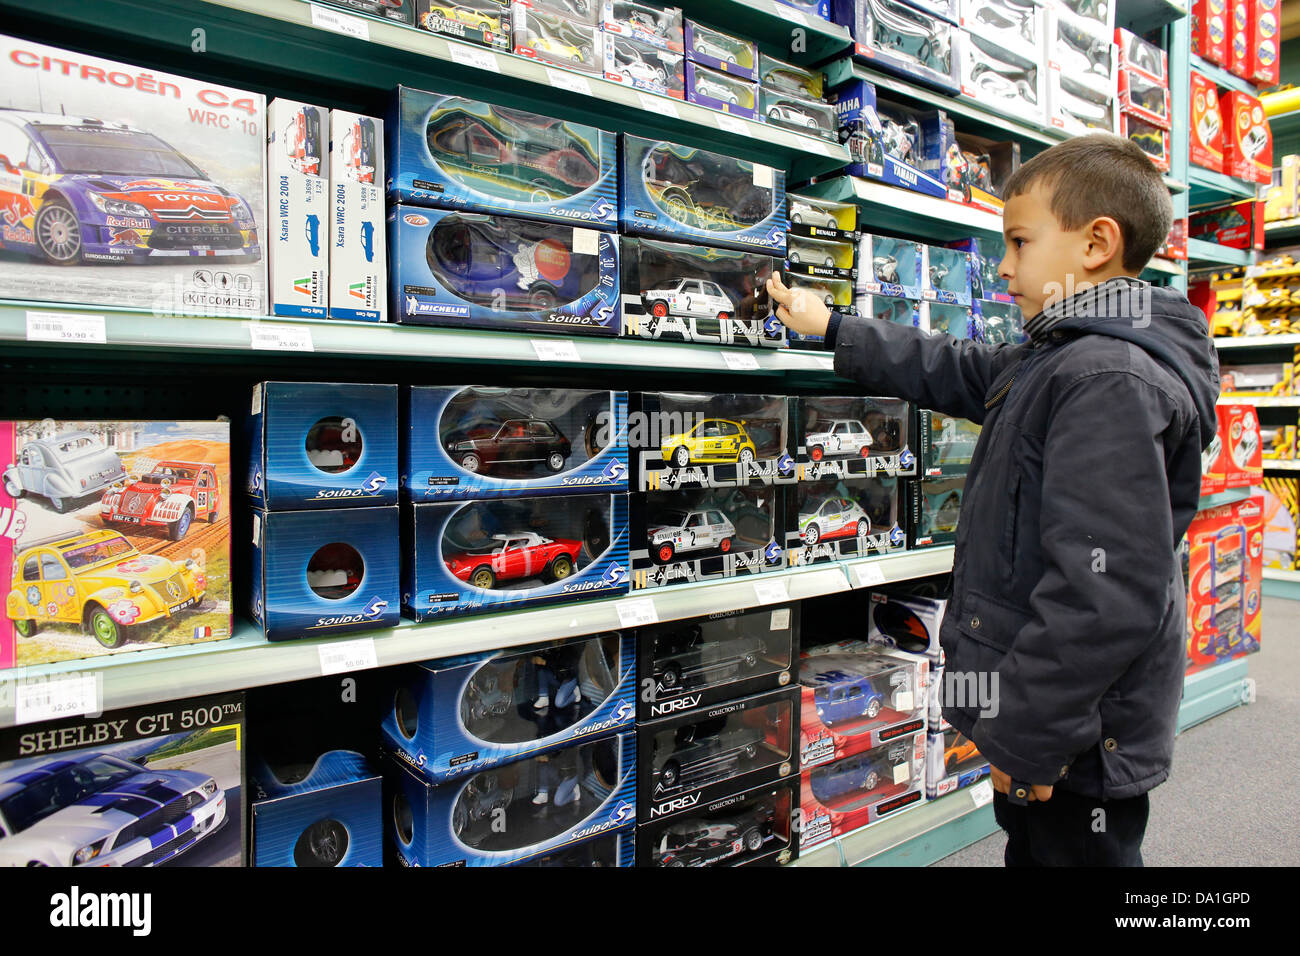 Toys For Boys Store : Toys for boys shop stock photos